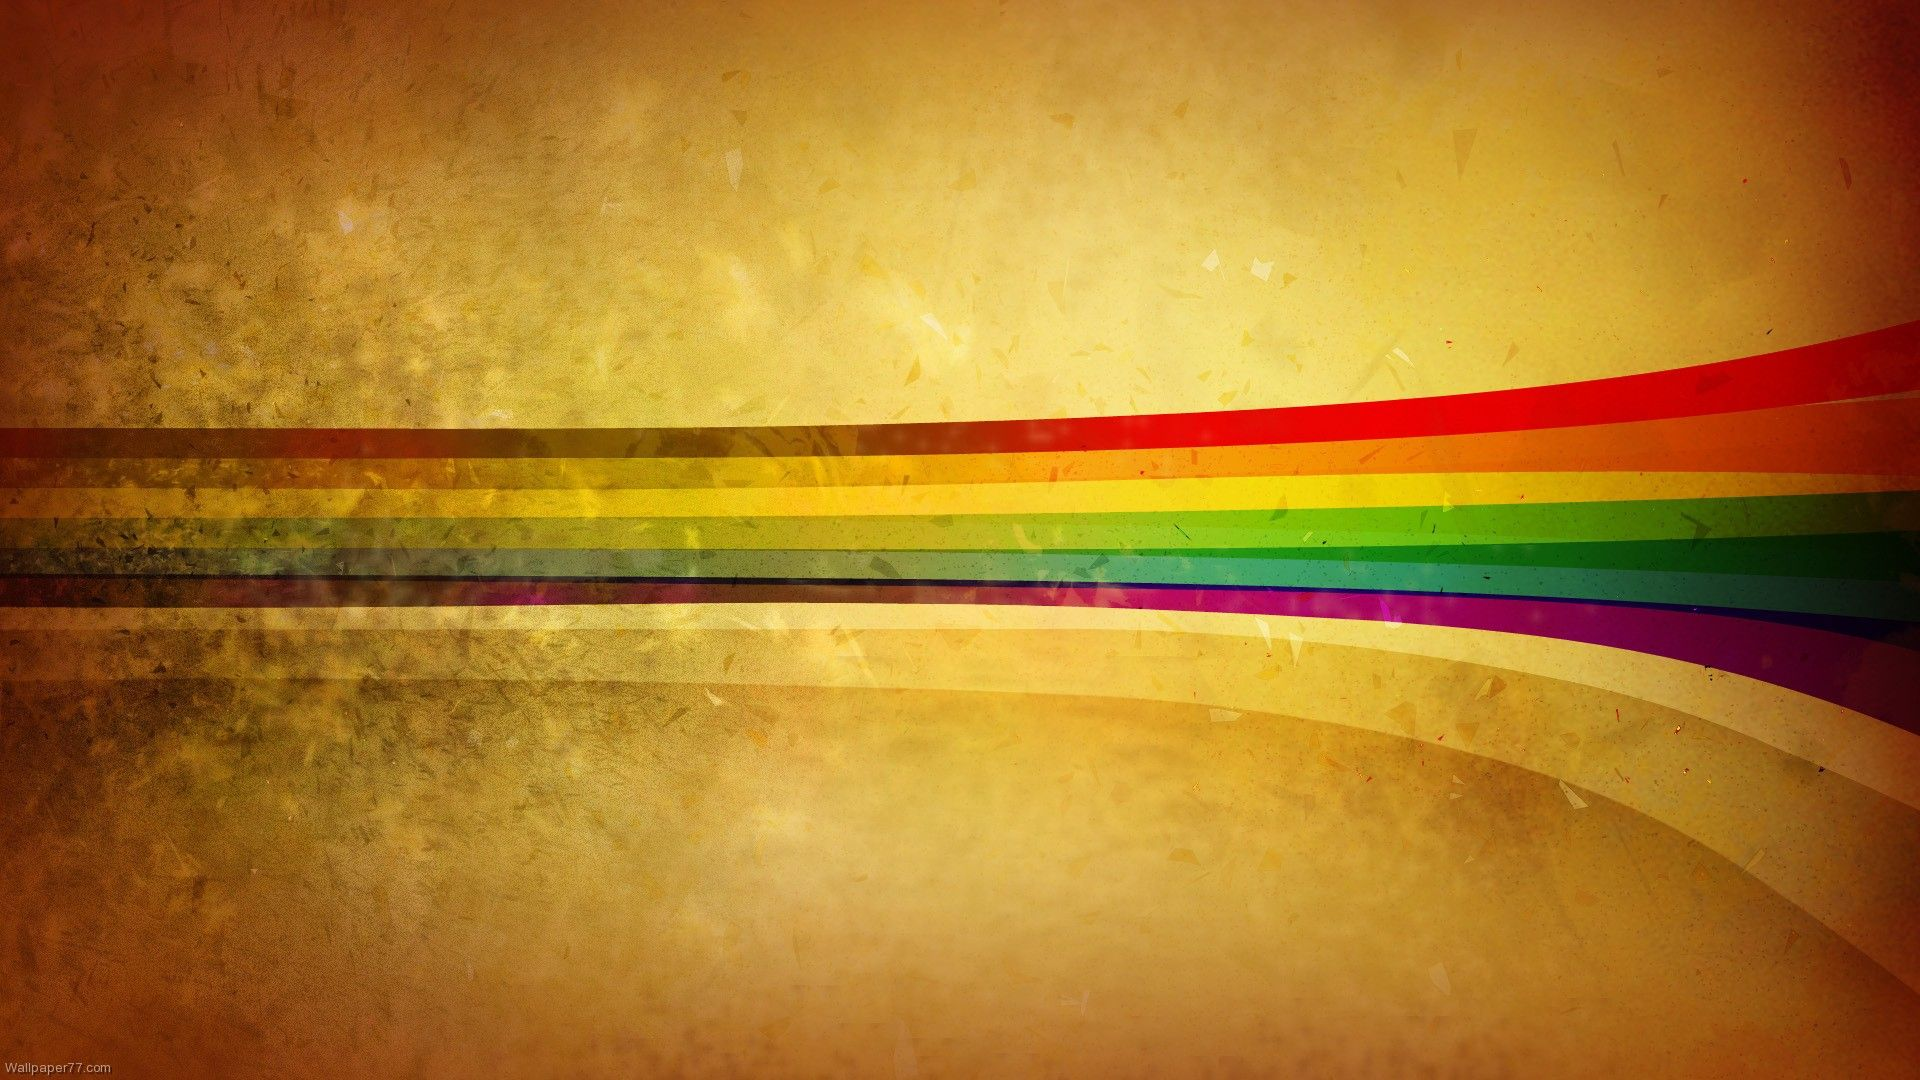 Retro Wallpaper High Definition For Desktop Wallpaper